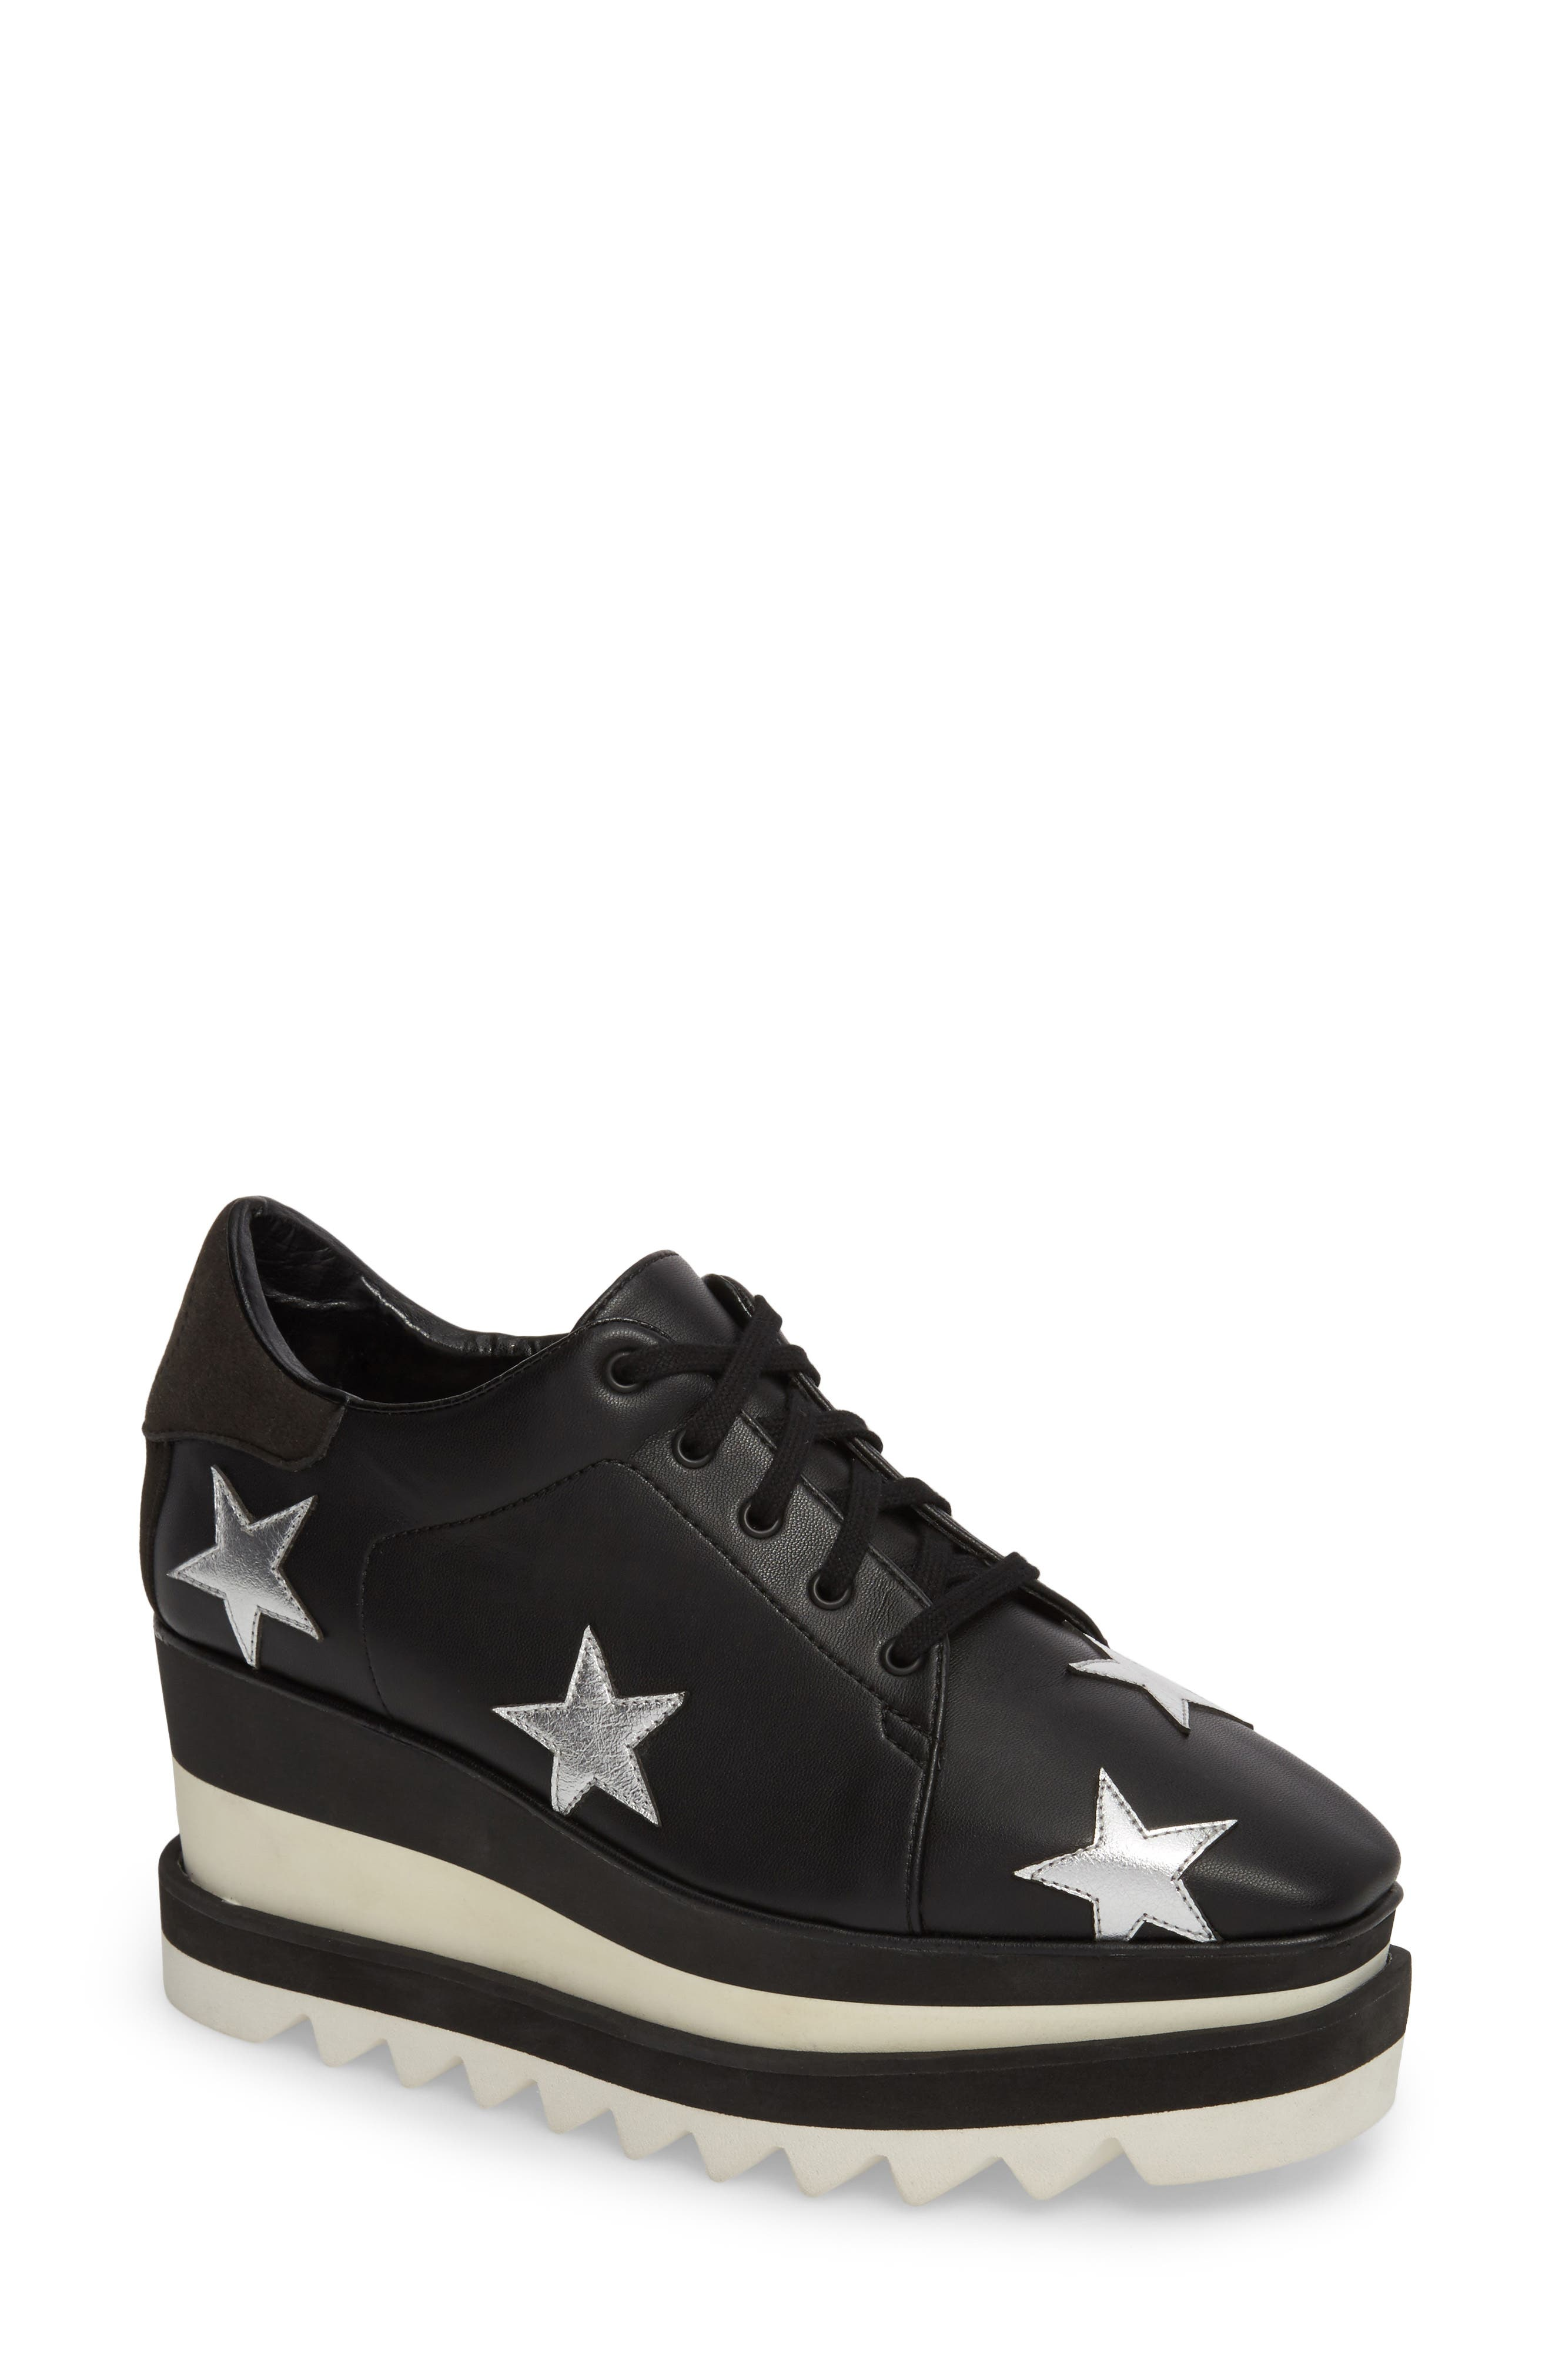 Alternate Image 1 Selected - Stella McCartney Elyse Platform Sneaker (Women)